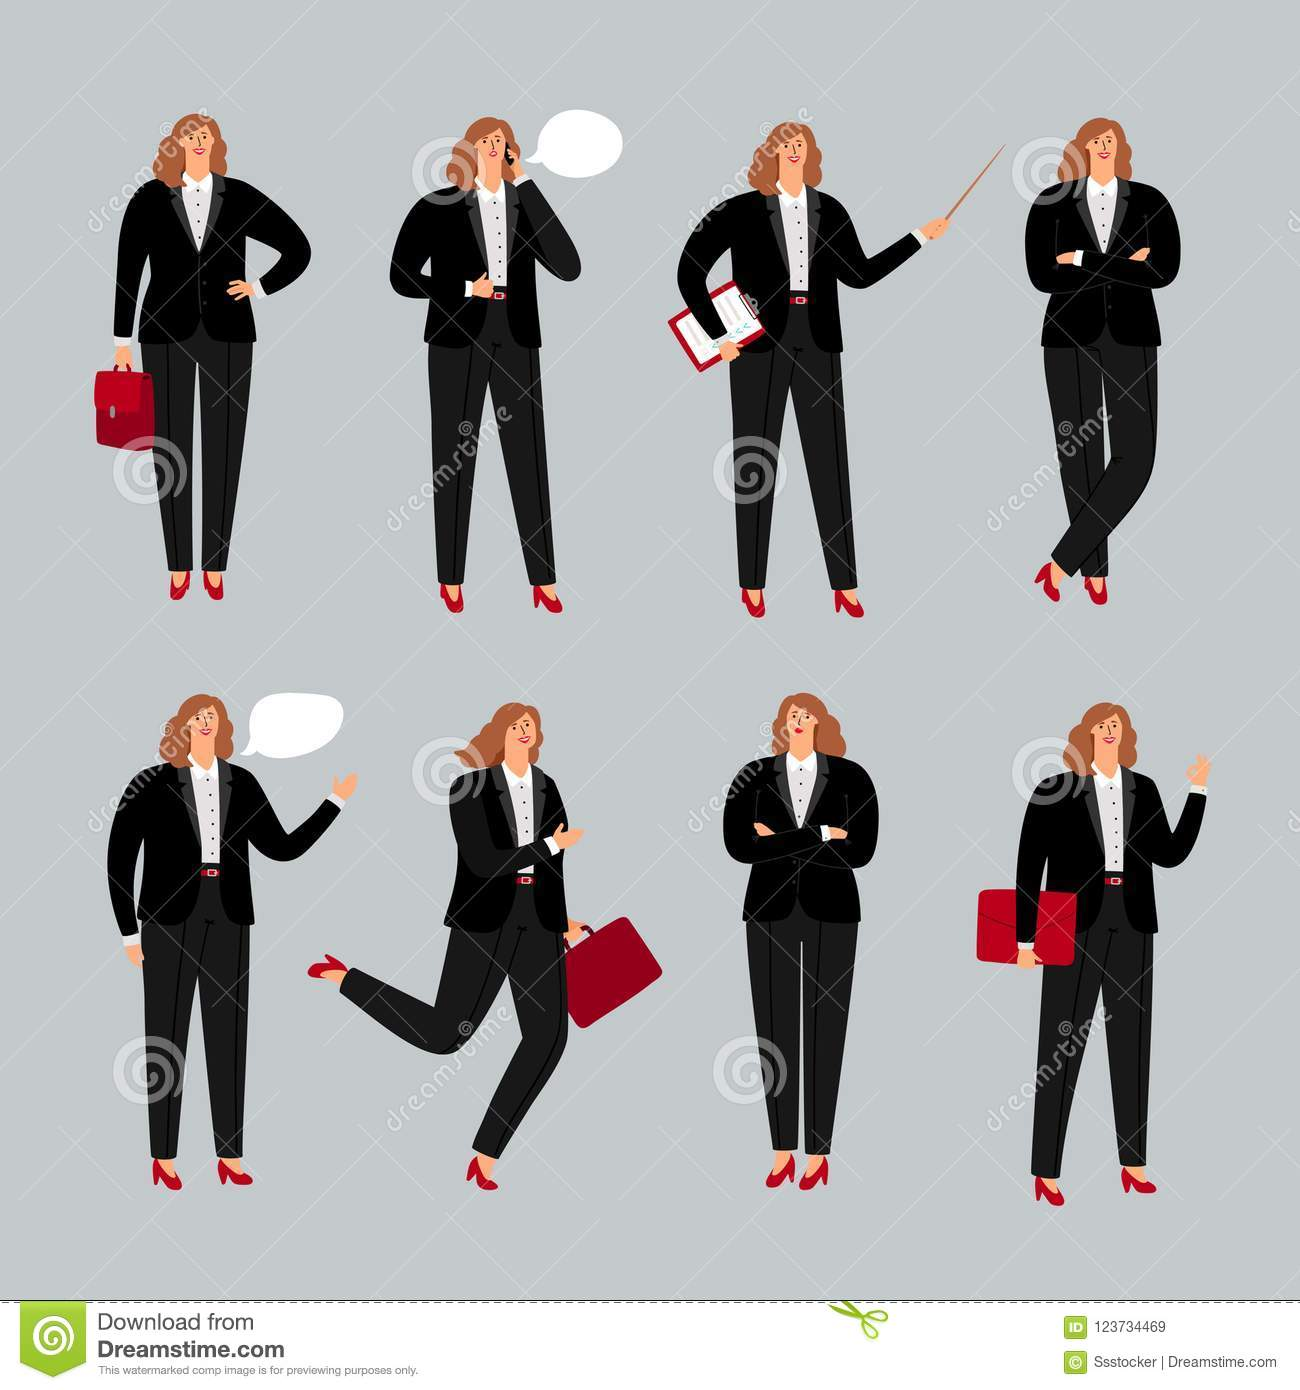 Businesswoman character. Young female professional vector illustration, business woman standing, calling by phone and